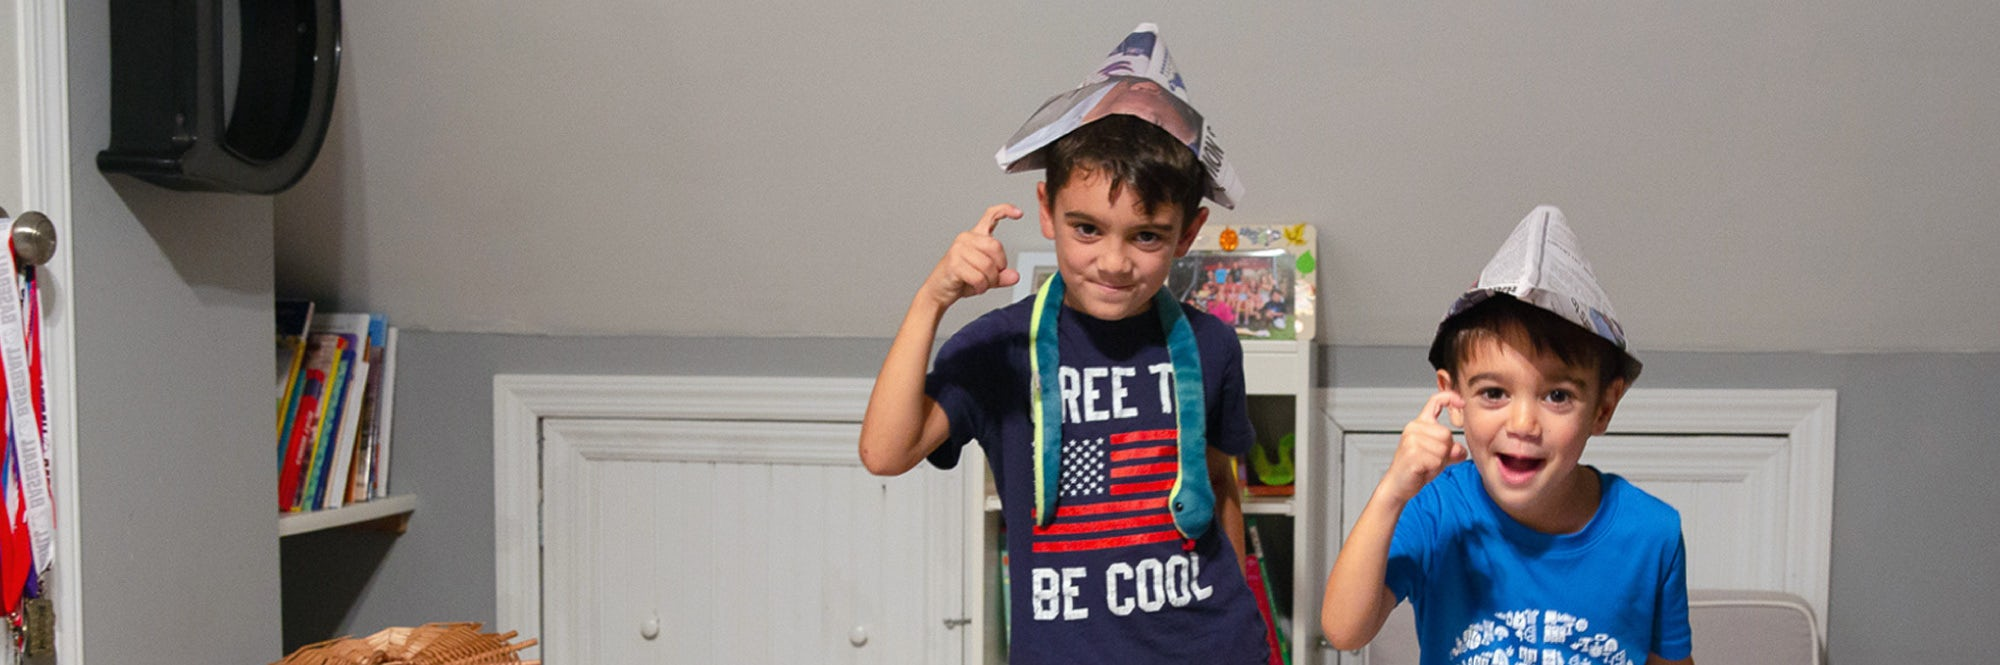 Two young boys wear newspaper hats and act like pirates to complete a mission in The Great New Victory Scavenger Hunt.